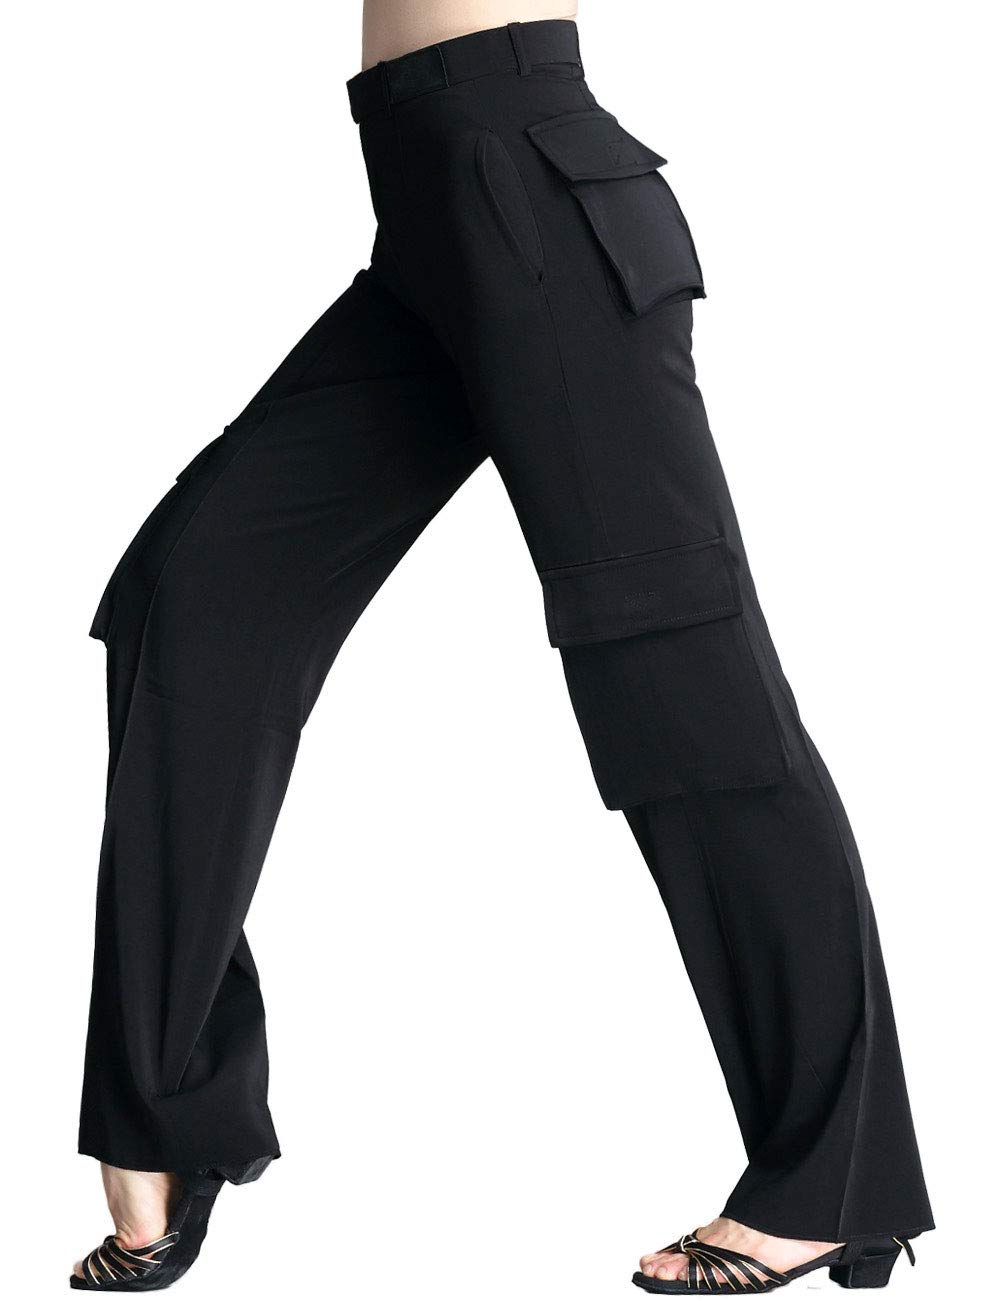 Daydance Men's Latin Pants Loose Straight Ballroom Tango Salsa Dance Pants with Pockets,Black-pockets,Size 28 (Fit Waist 89-92cm) by Daydance